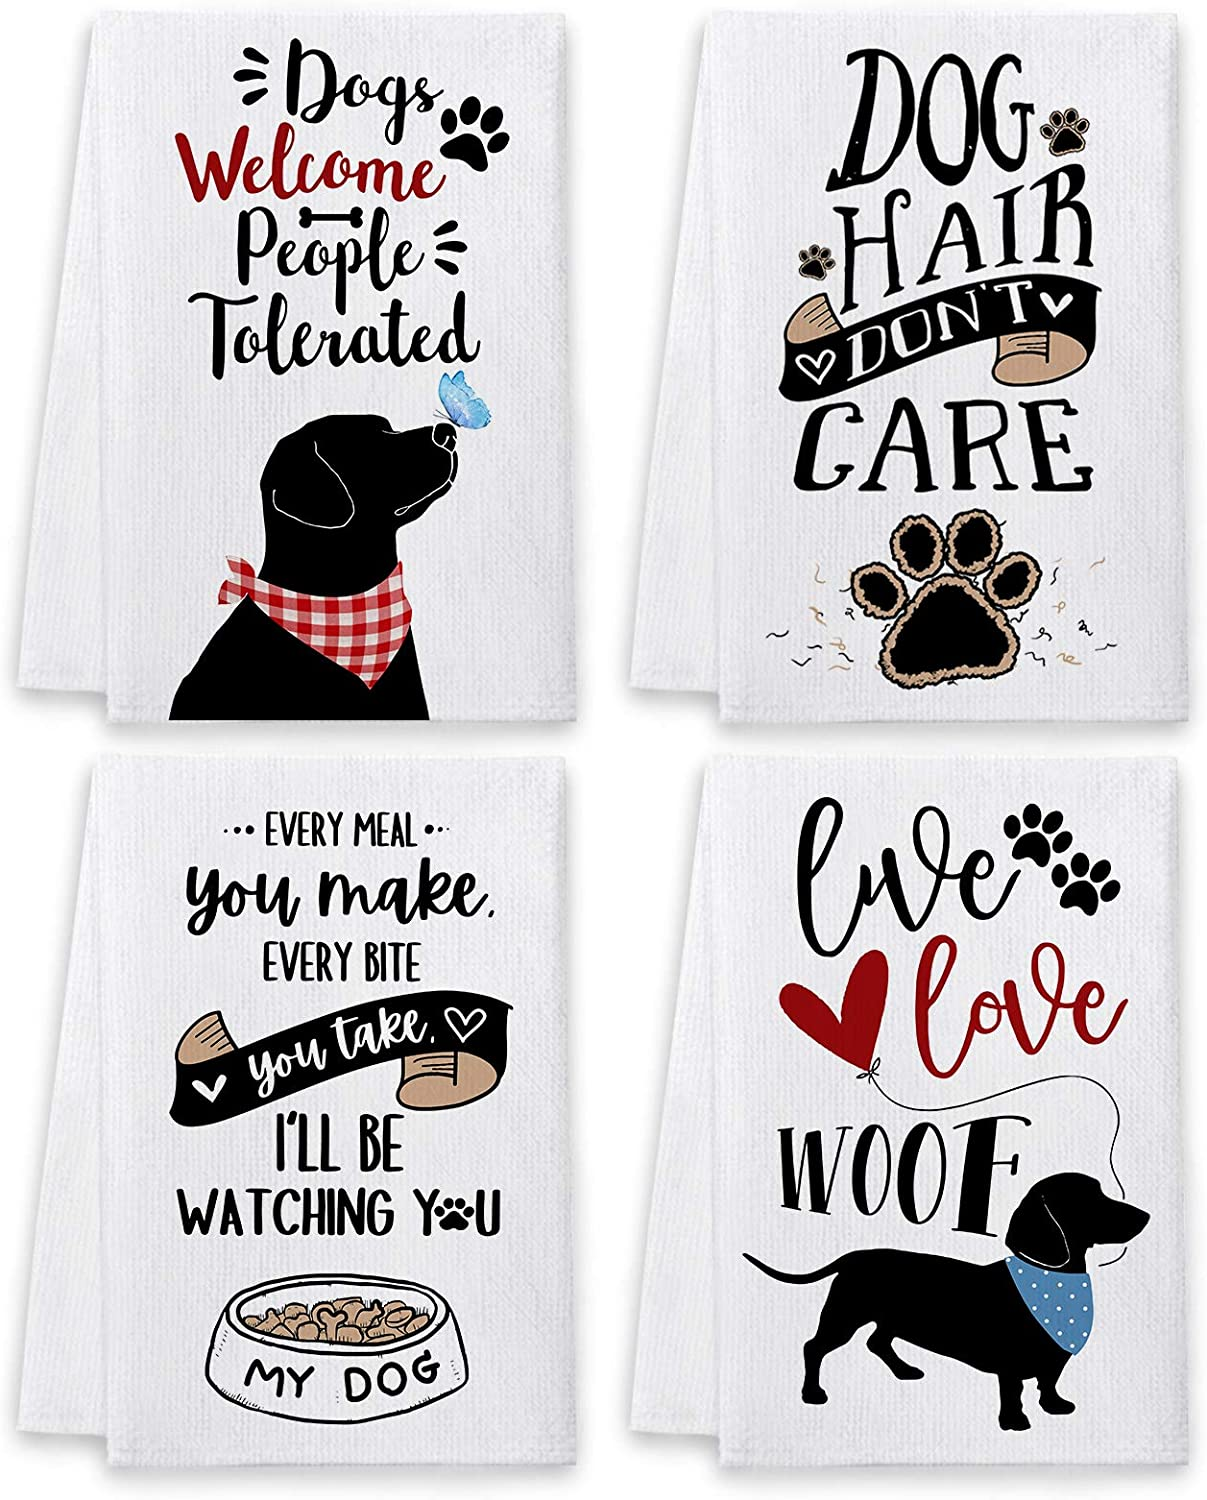 Bonsai Tree Dog Dish Towels and Dish Cloths, Dog Lover Owners Mom Gifts Funny Kitchen Hand Towels Sets of 4, Dogs Welcome People Tolerated Sayings Tea Towel Housewarming Decor for New Home Bathroom